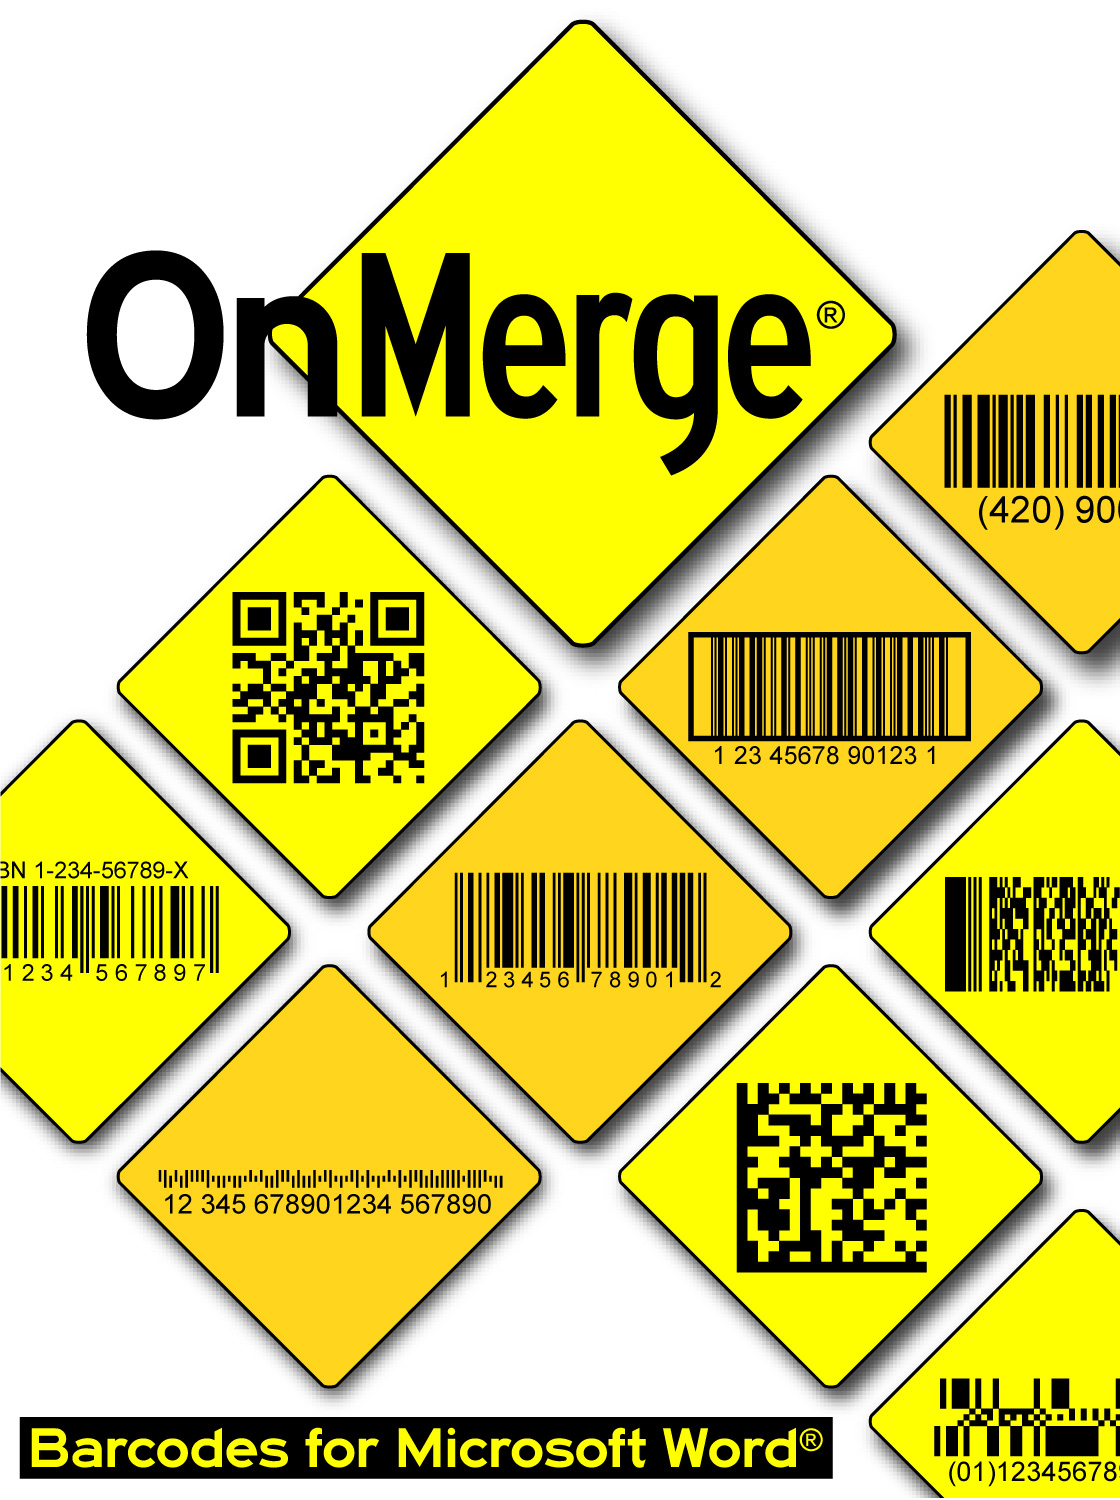 OnMerge Barcodes Free Trial. All Popular Barcodes, Easy to Use, Professional Barcode Generator Software. Instant [Download]